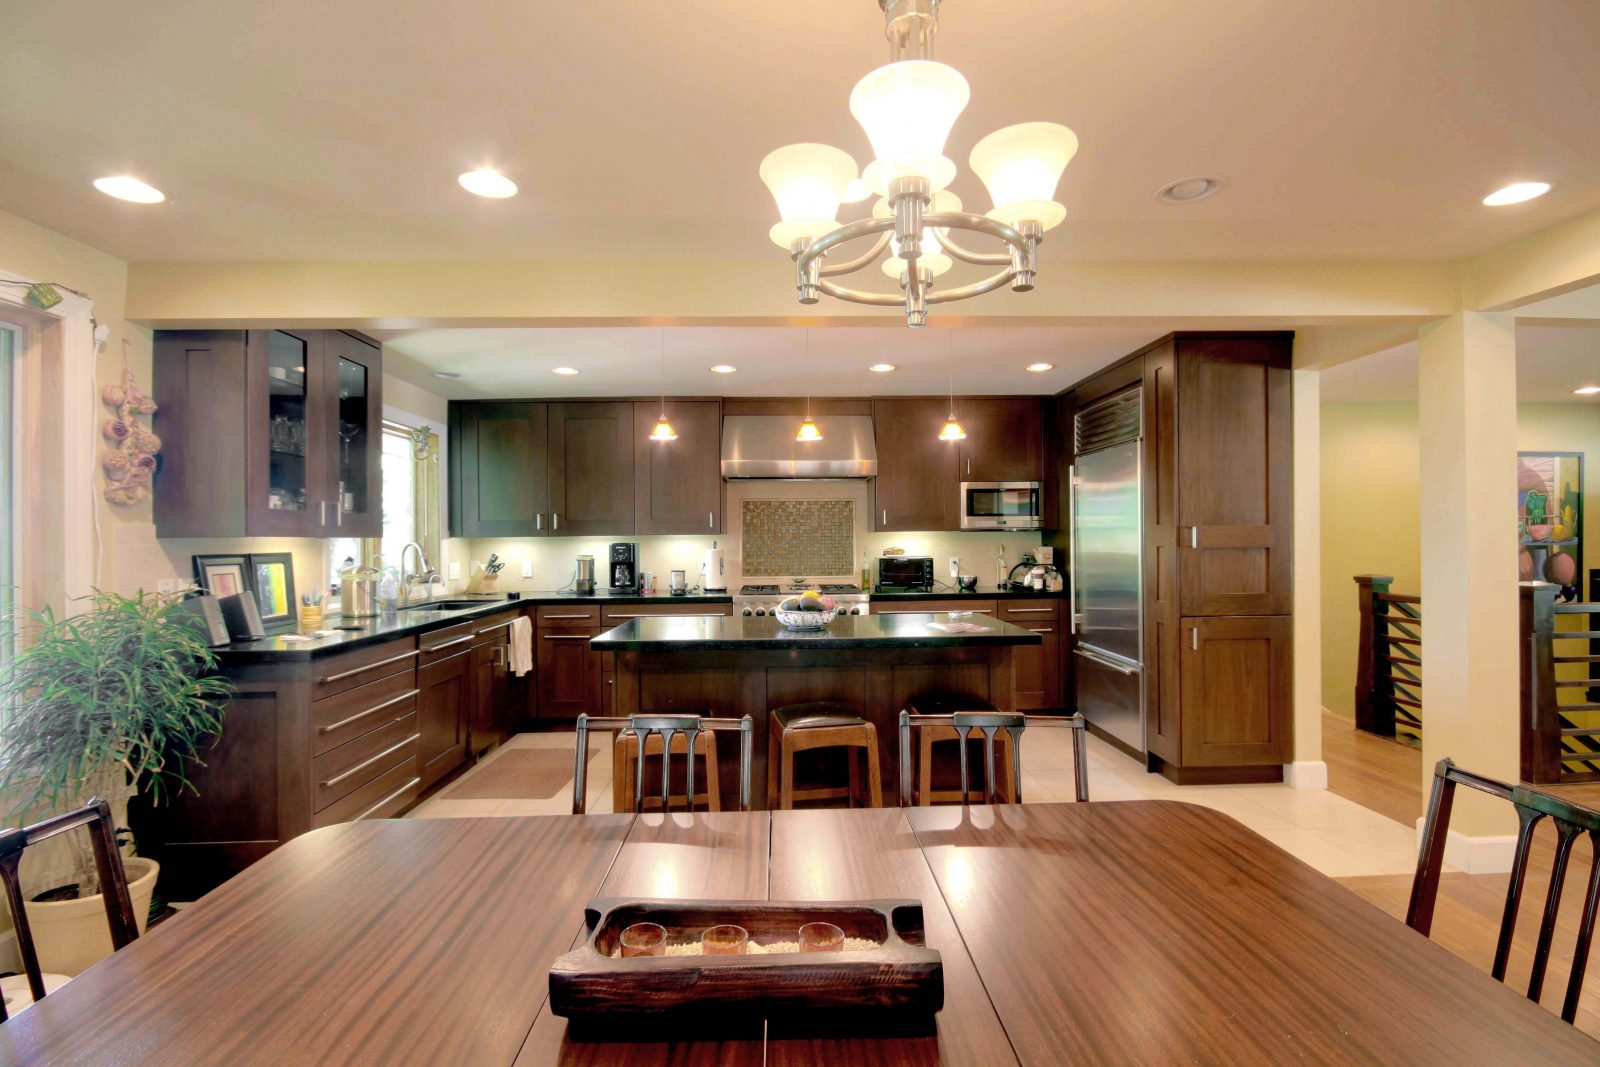 After_Interior Designs_Kitchen Renovation_Rambler Renovations | Renovation Design Group